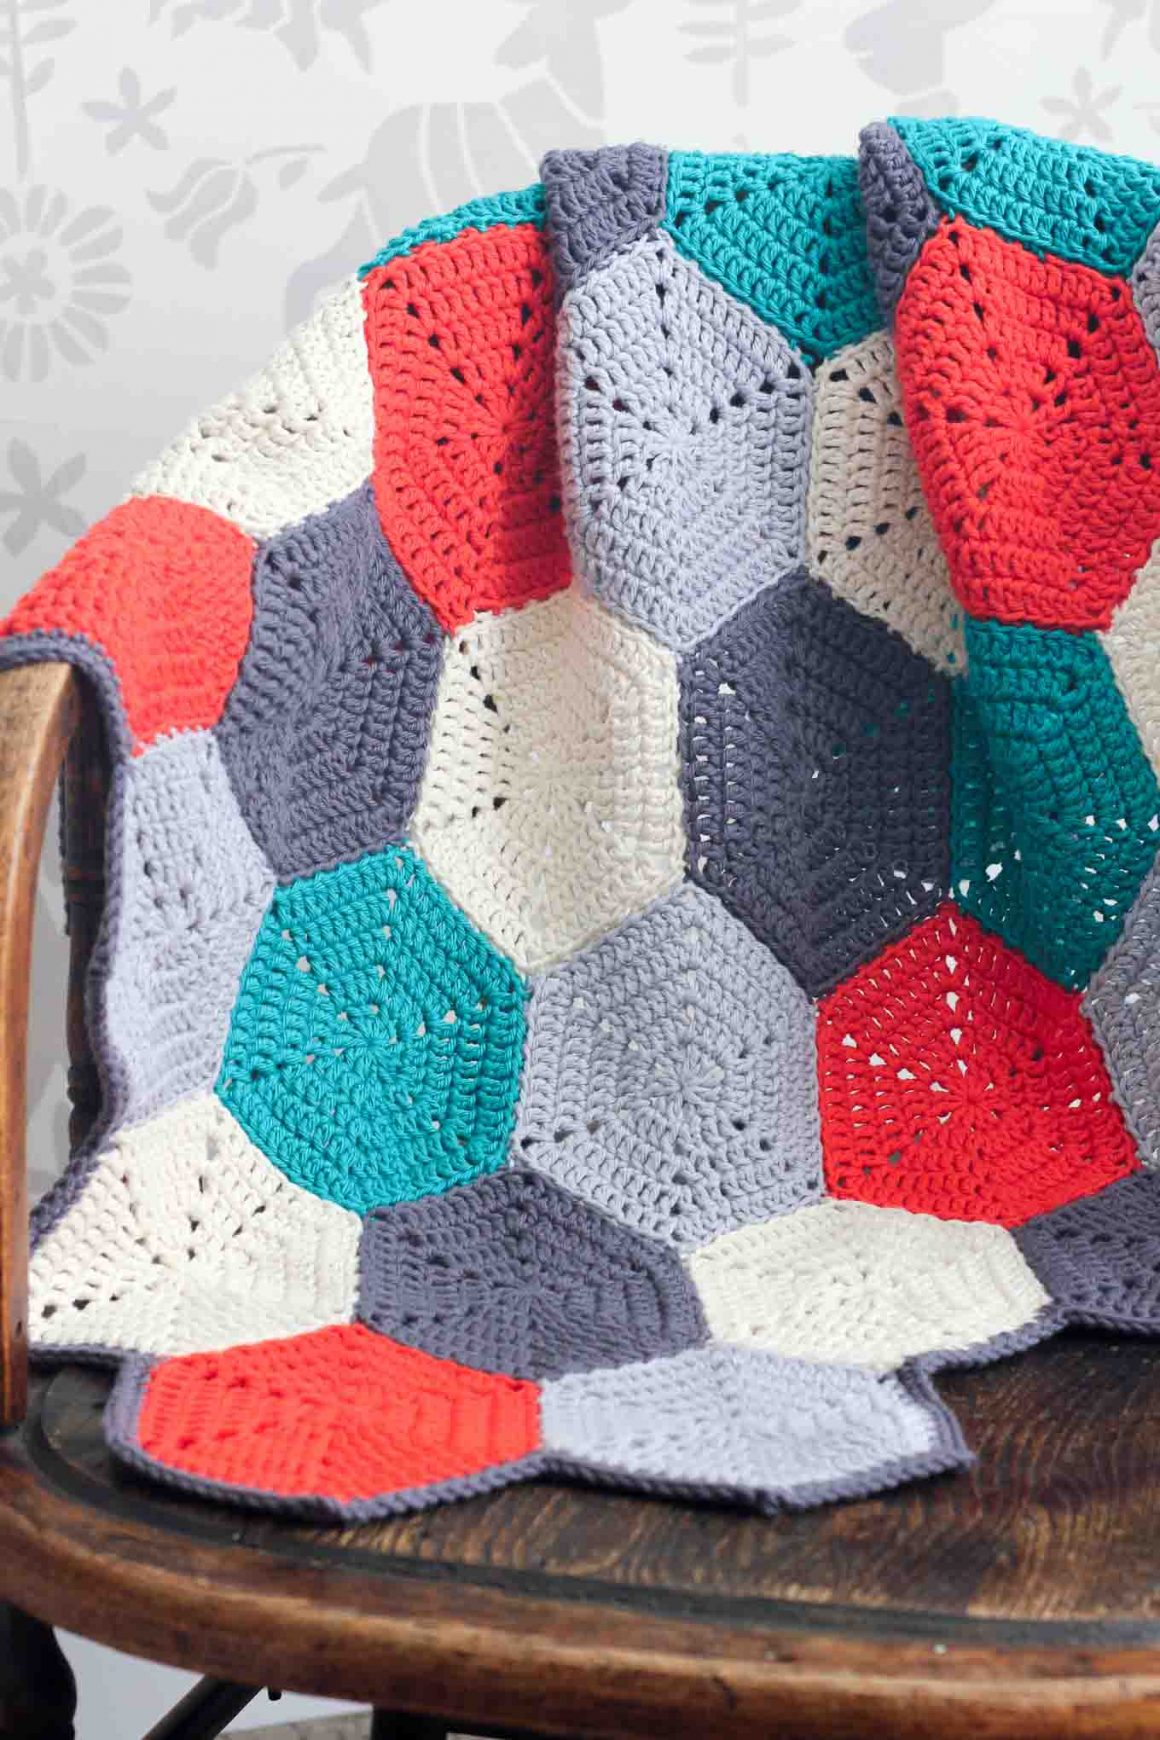 27 Crochet Projects That Are Going To Make You Want To Learn How To Crochet: Happy Hexagons Crochet Pattern from Make and Do Crew